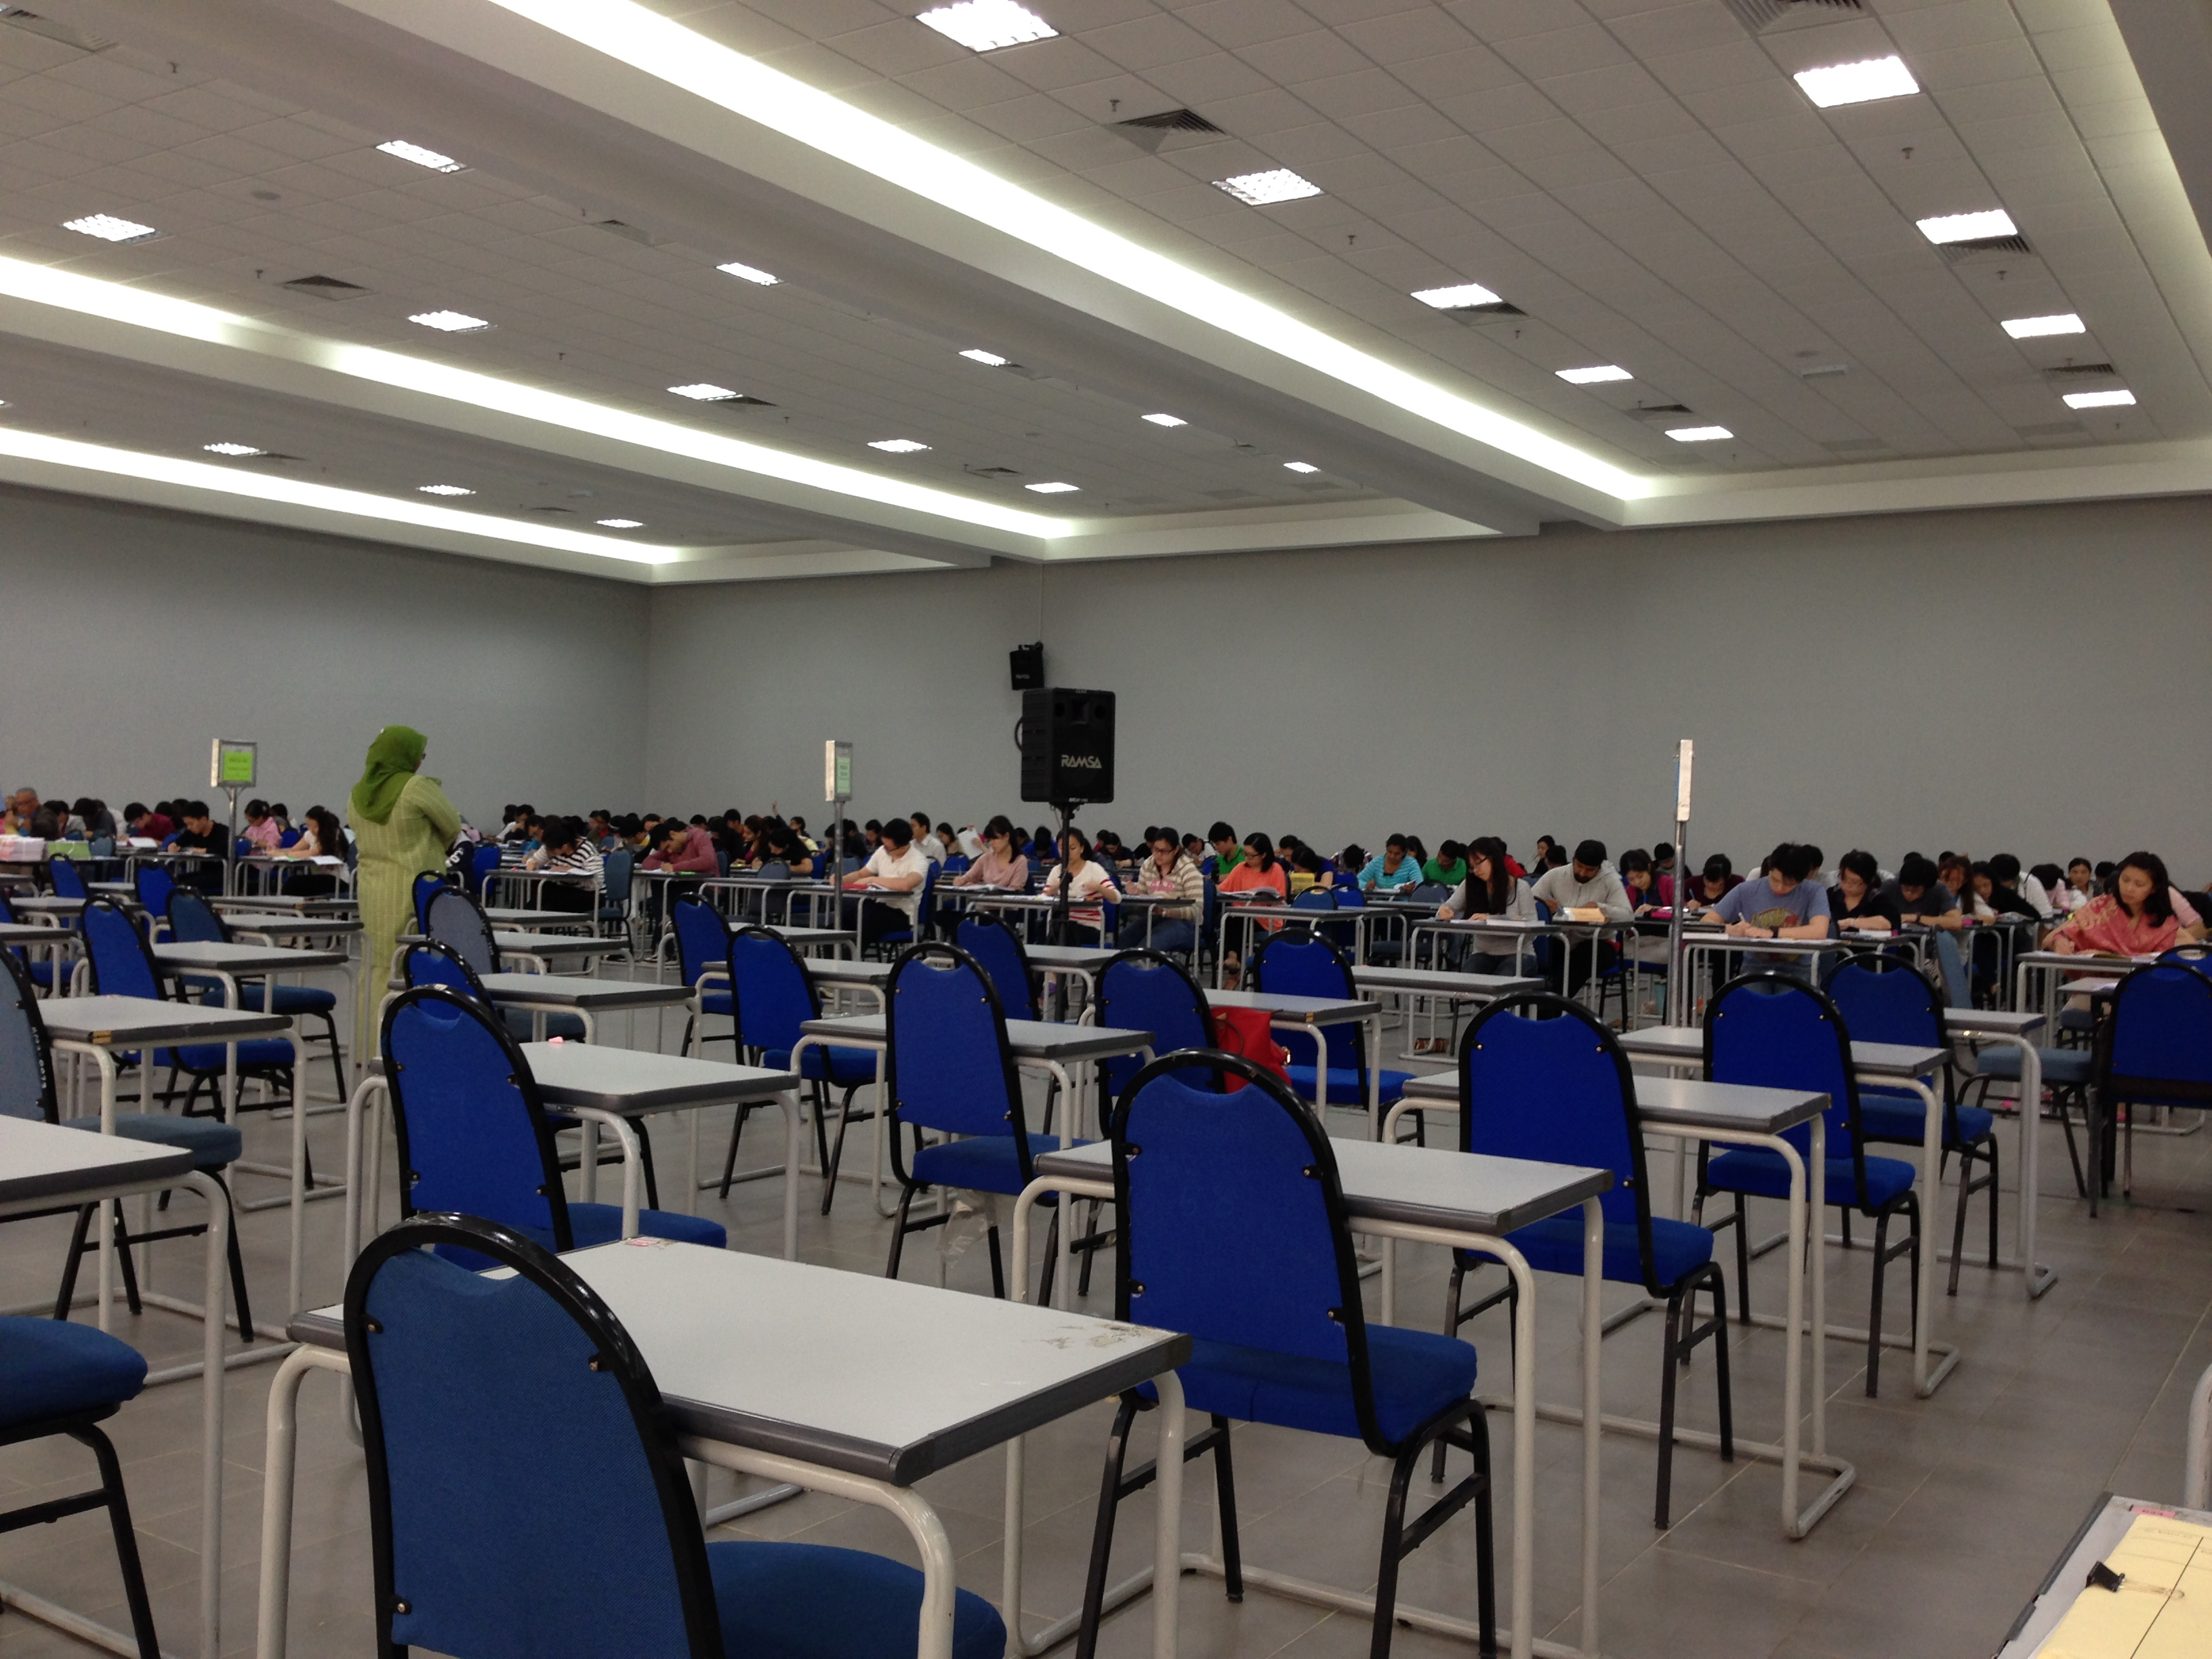 CLP Supplementary Examination (5 October 2013) at Hall 4, Examination Building, University of Malaya, Kuala Lumpur